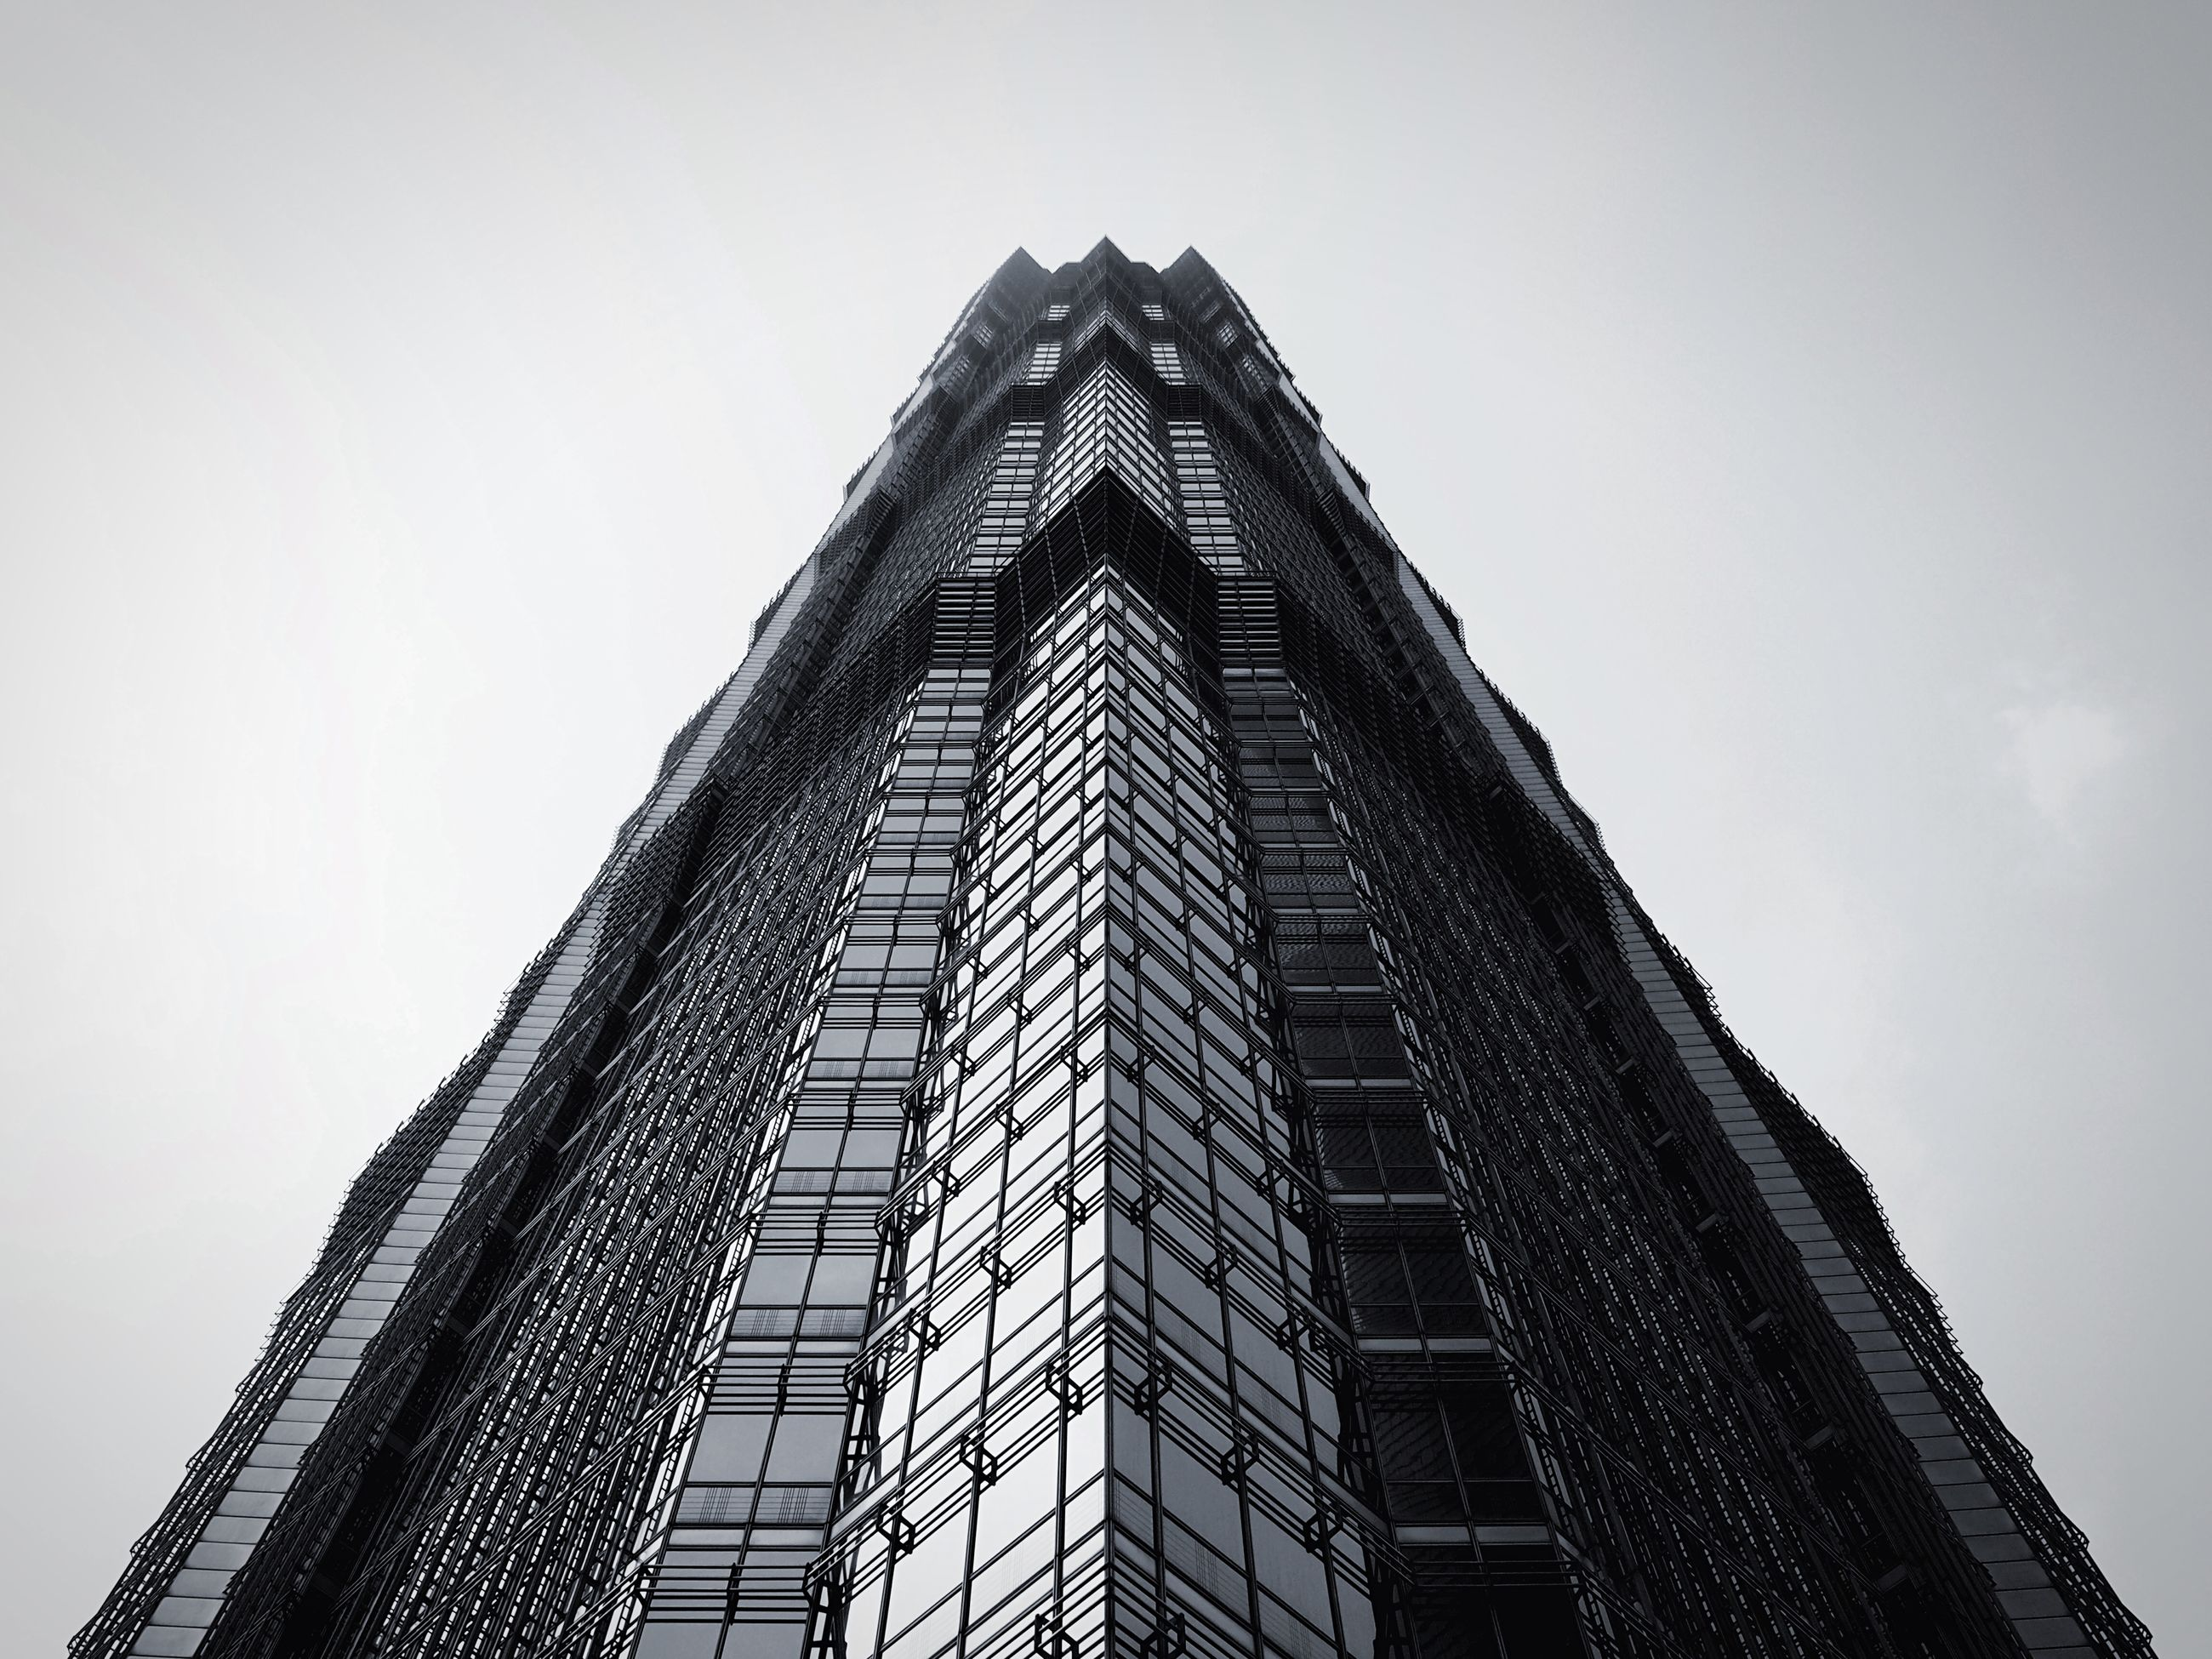 architecture, built structure, low angle view, building exterior, tower, clear sky, tall - high, city, famous place, skyscraper, sky, travel destinations, international landmark, modern, capital cities, tall, outdoors, architectural feature, day, no people